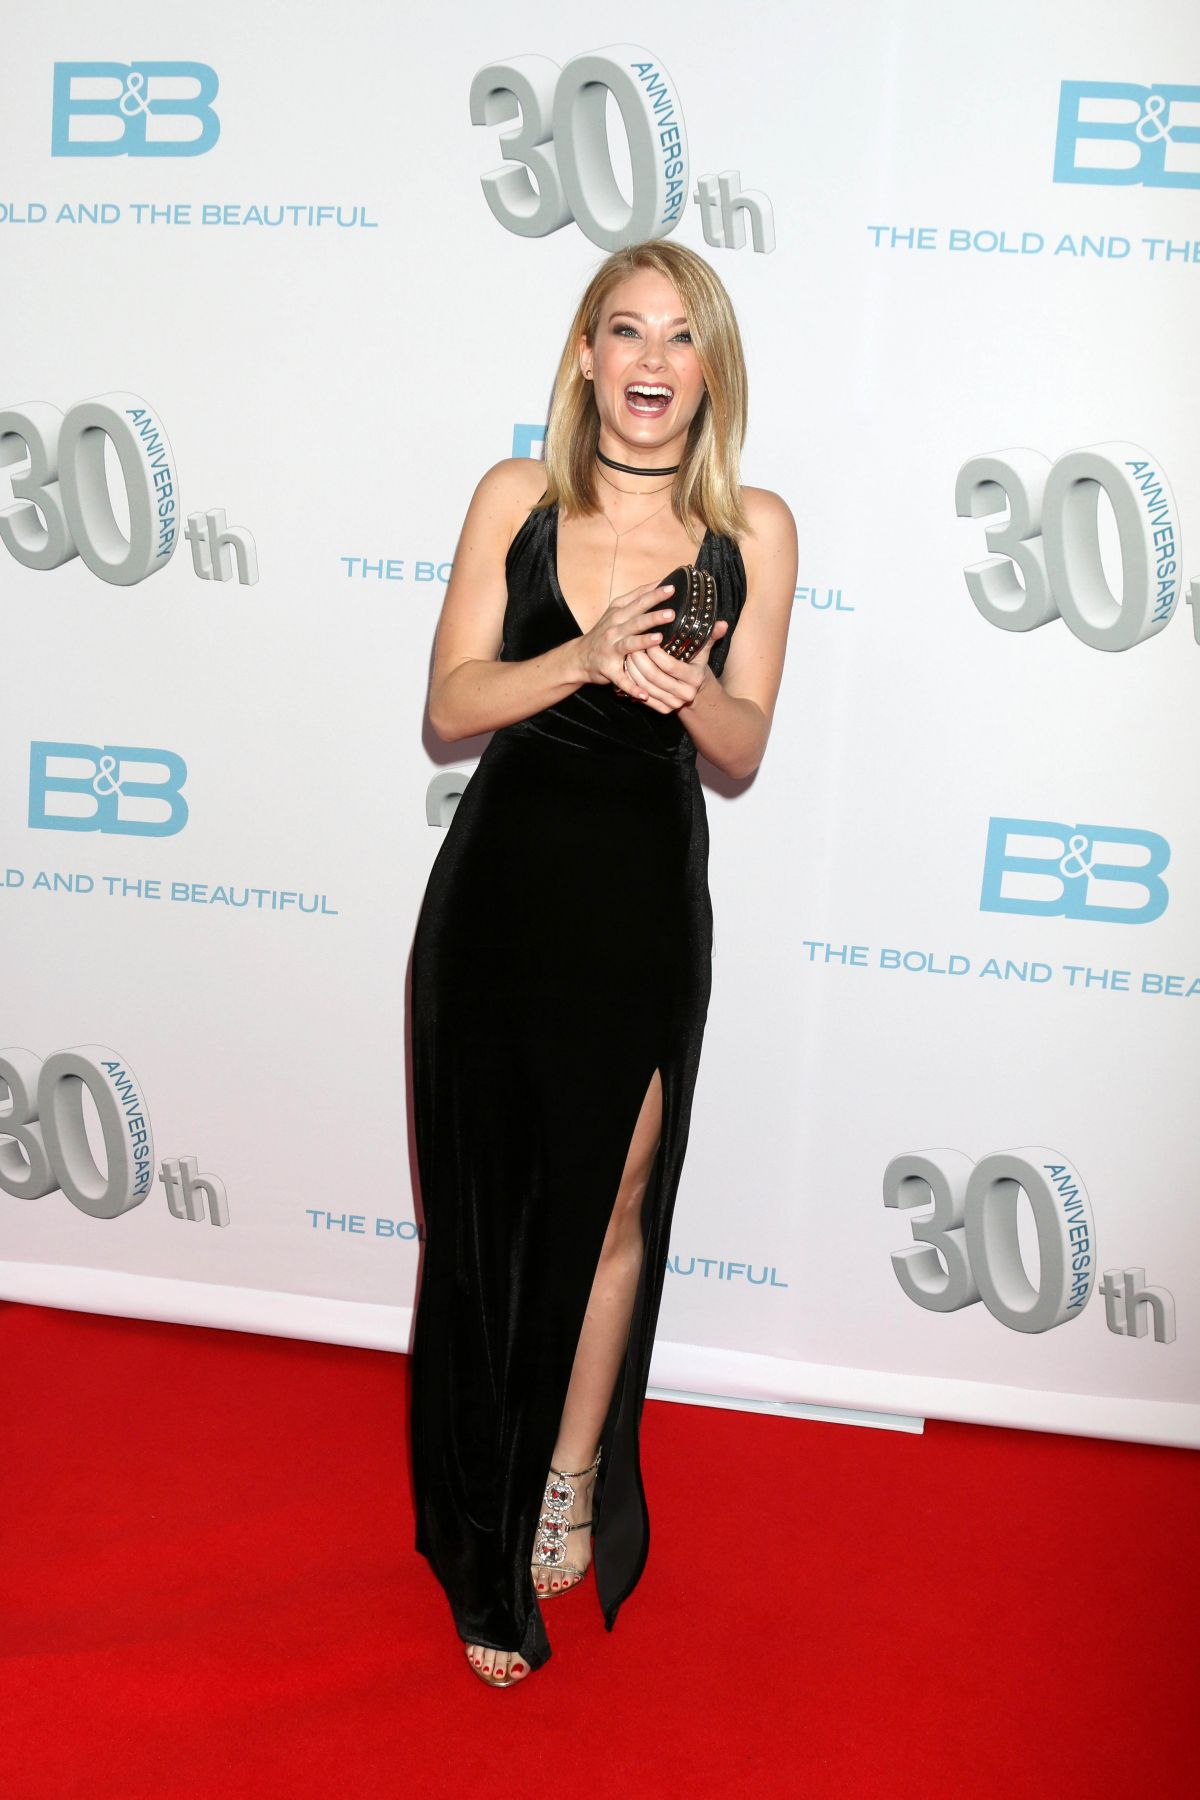 Kim Matula At The Bold And The Beautiful 30th Anniversary